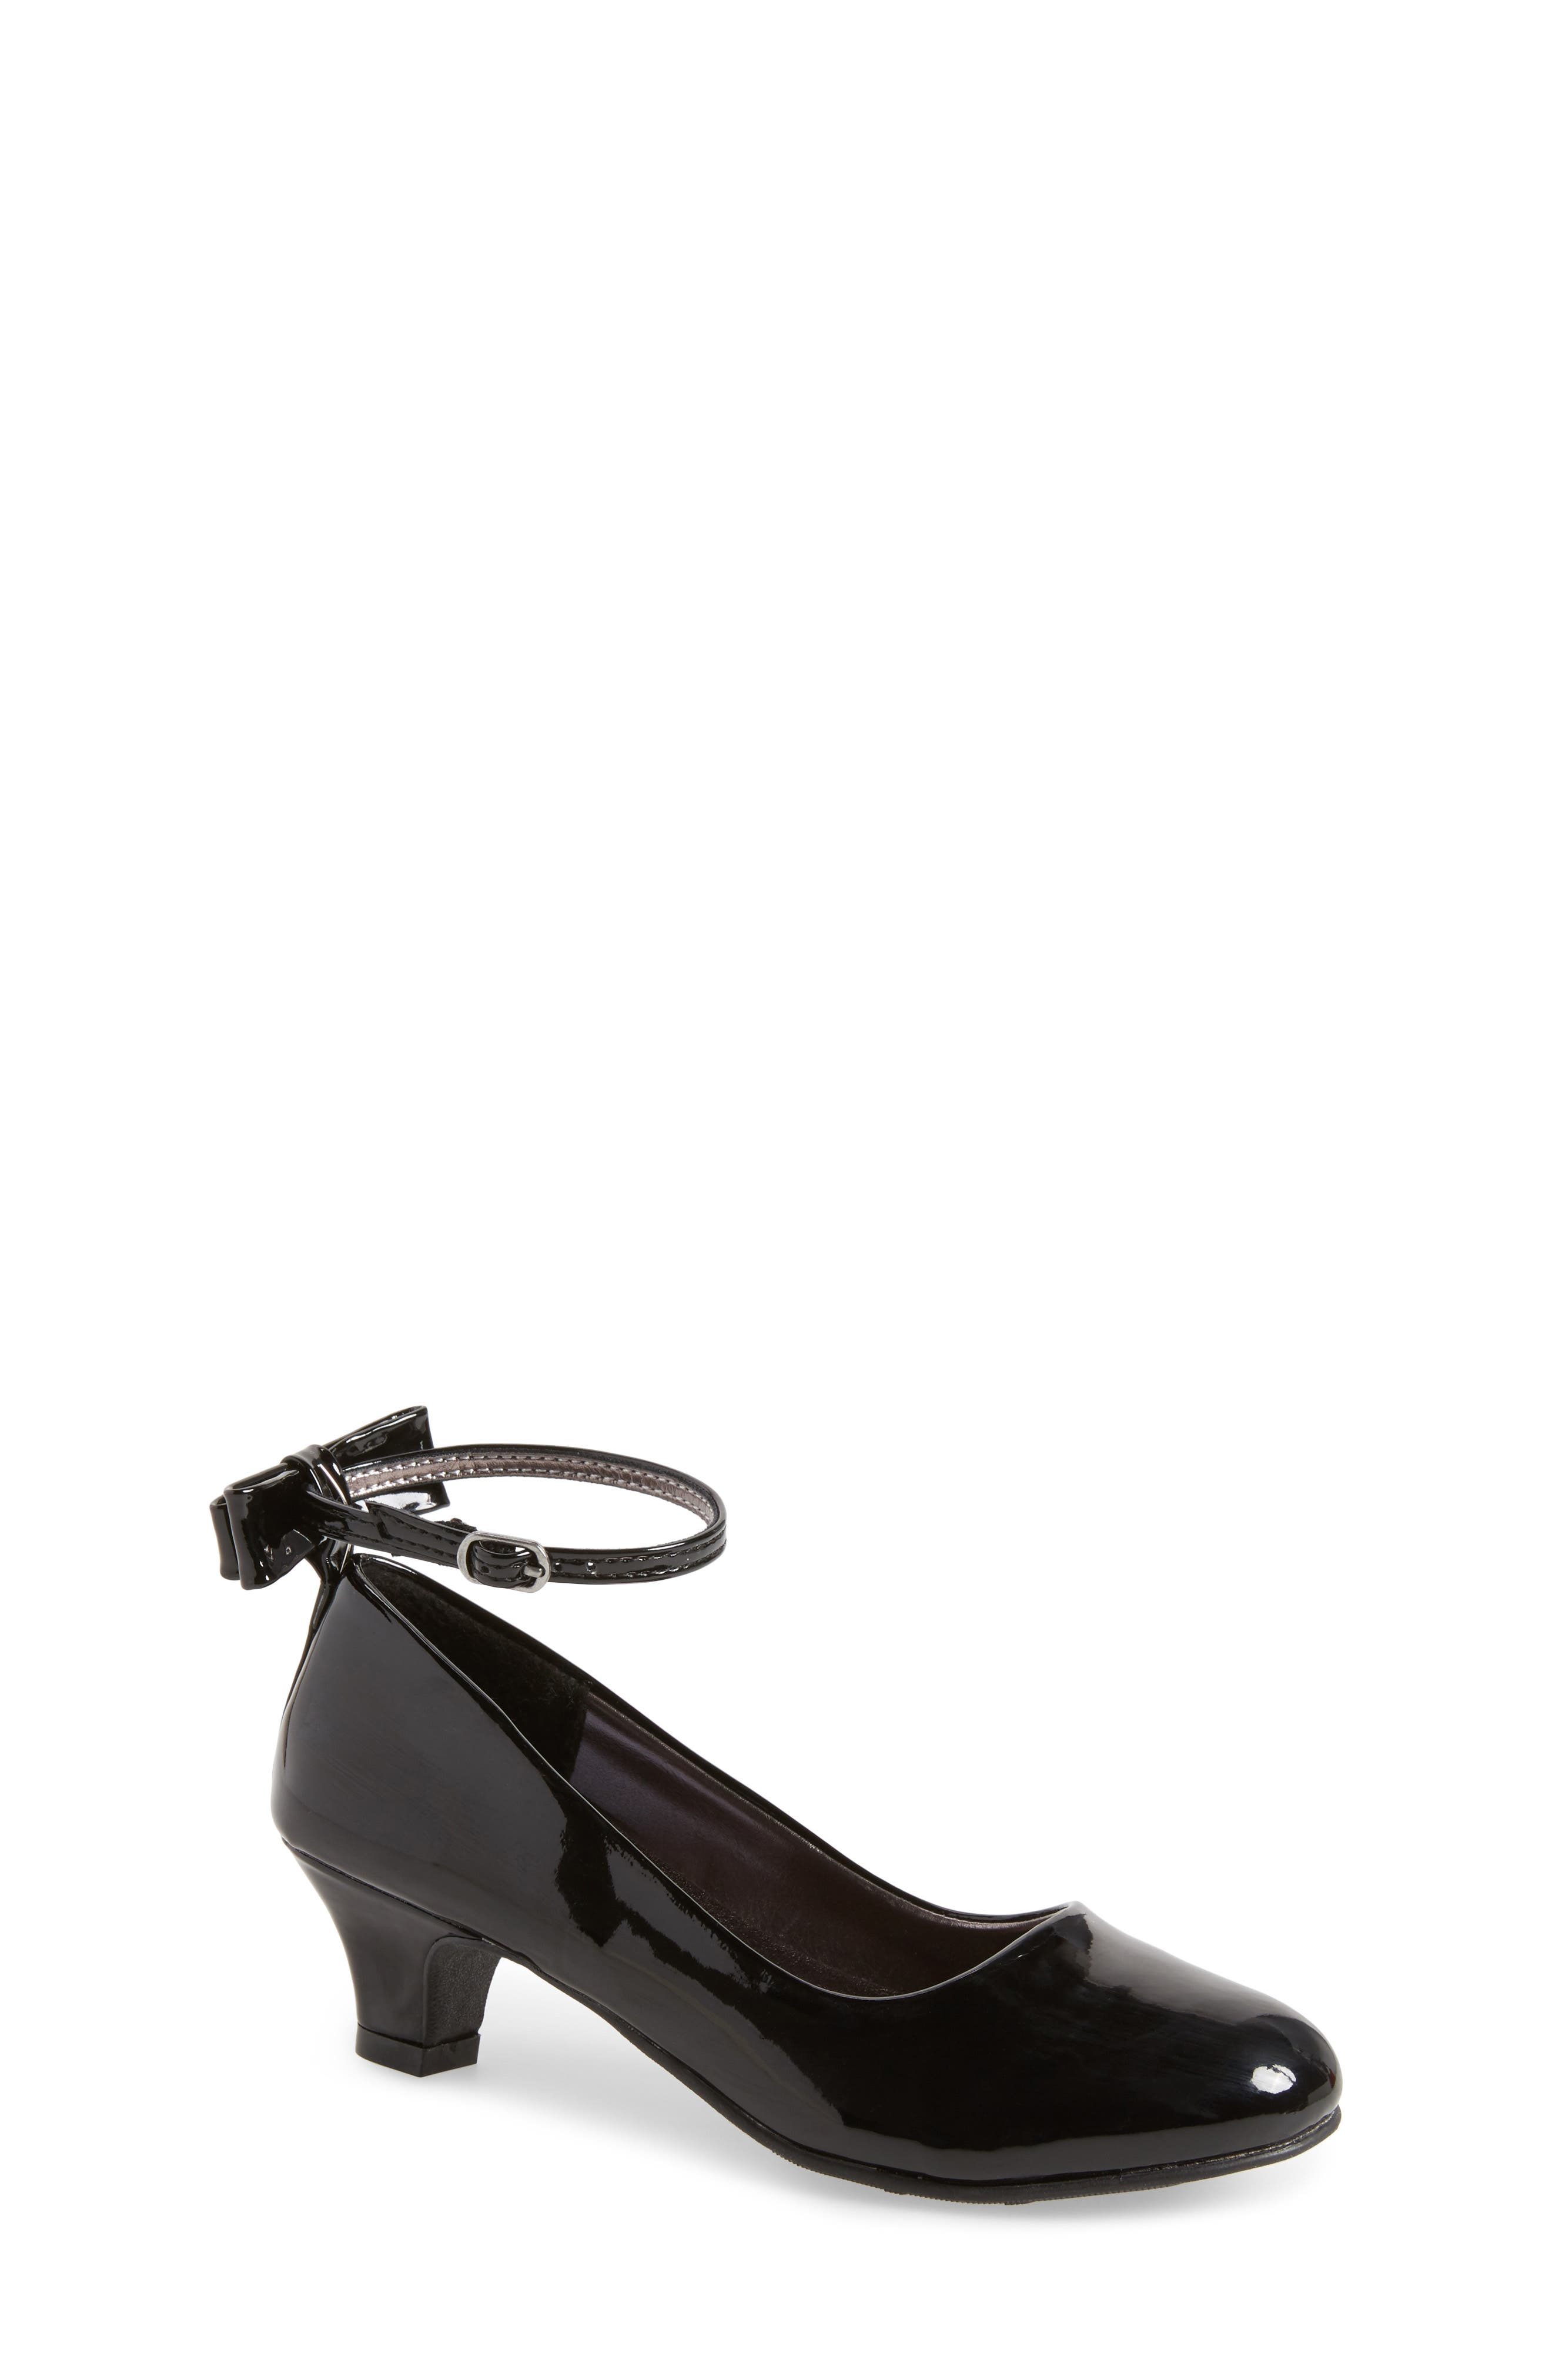 Alternate Image 1 Selected - Steve Madden Jbeckyy Ankle Strap Bow Pump (Little Kid & Big Kid)